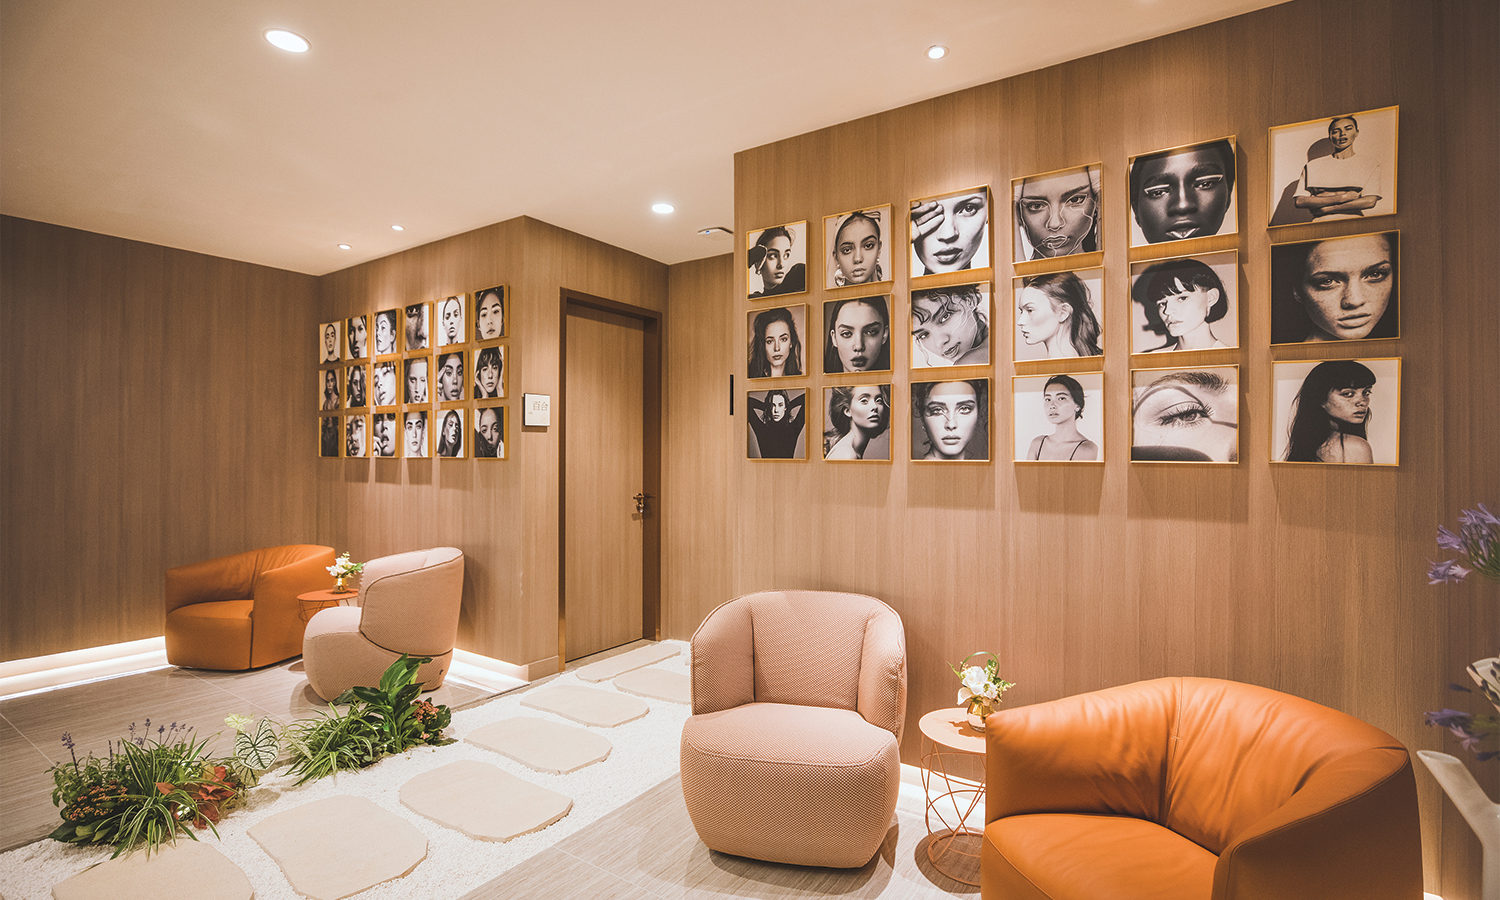 SOCIÉ Esthetic Center Enters The Mixc Mall Hangzhou